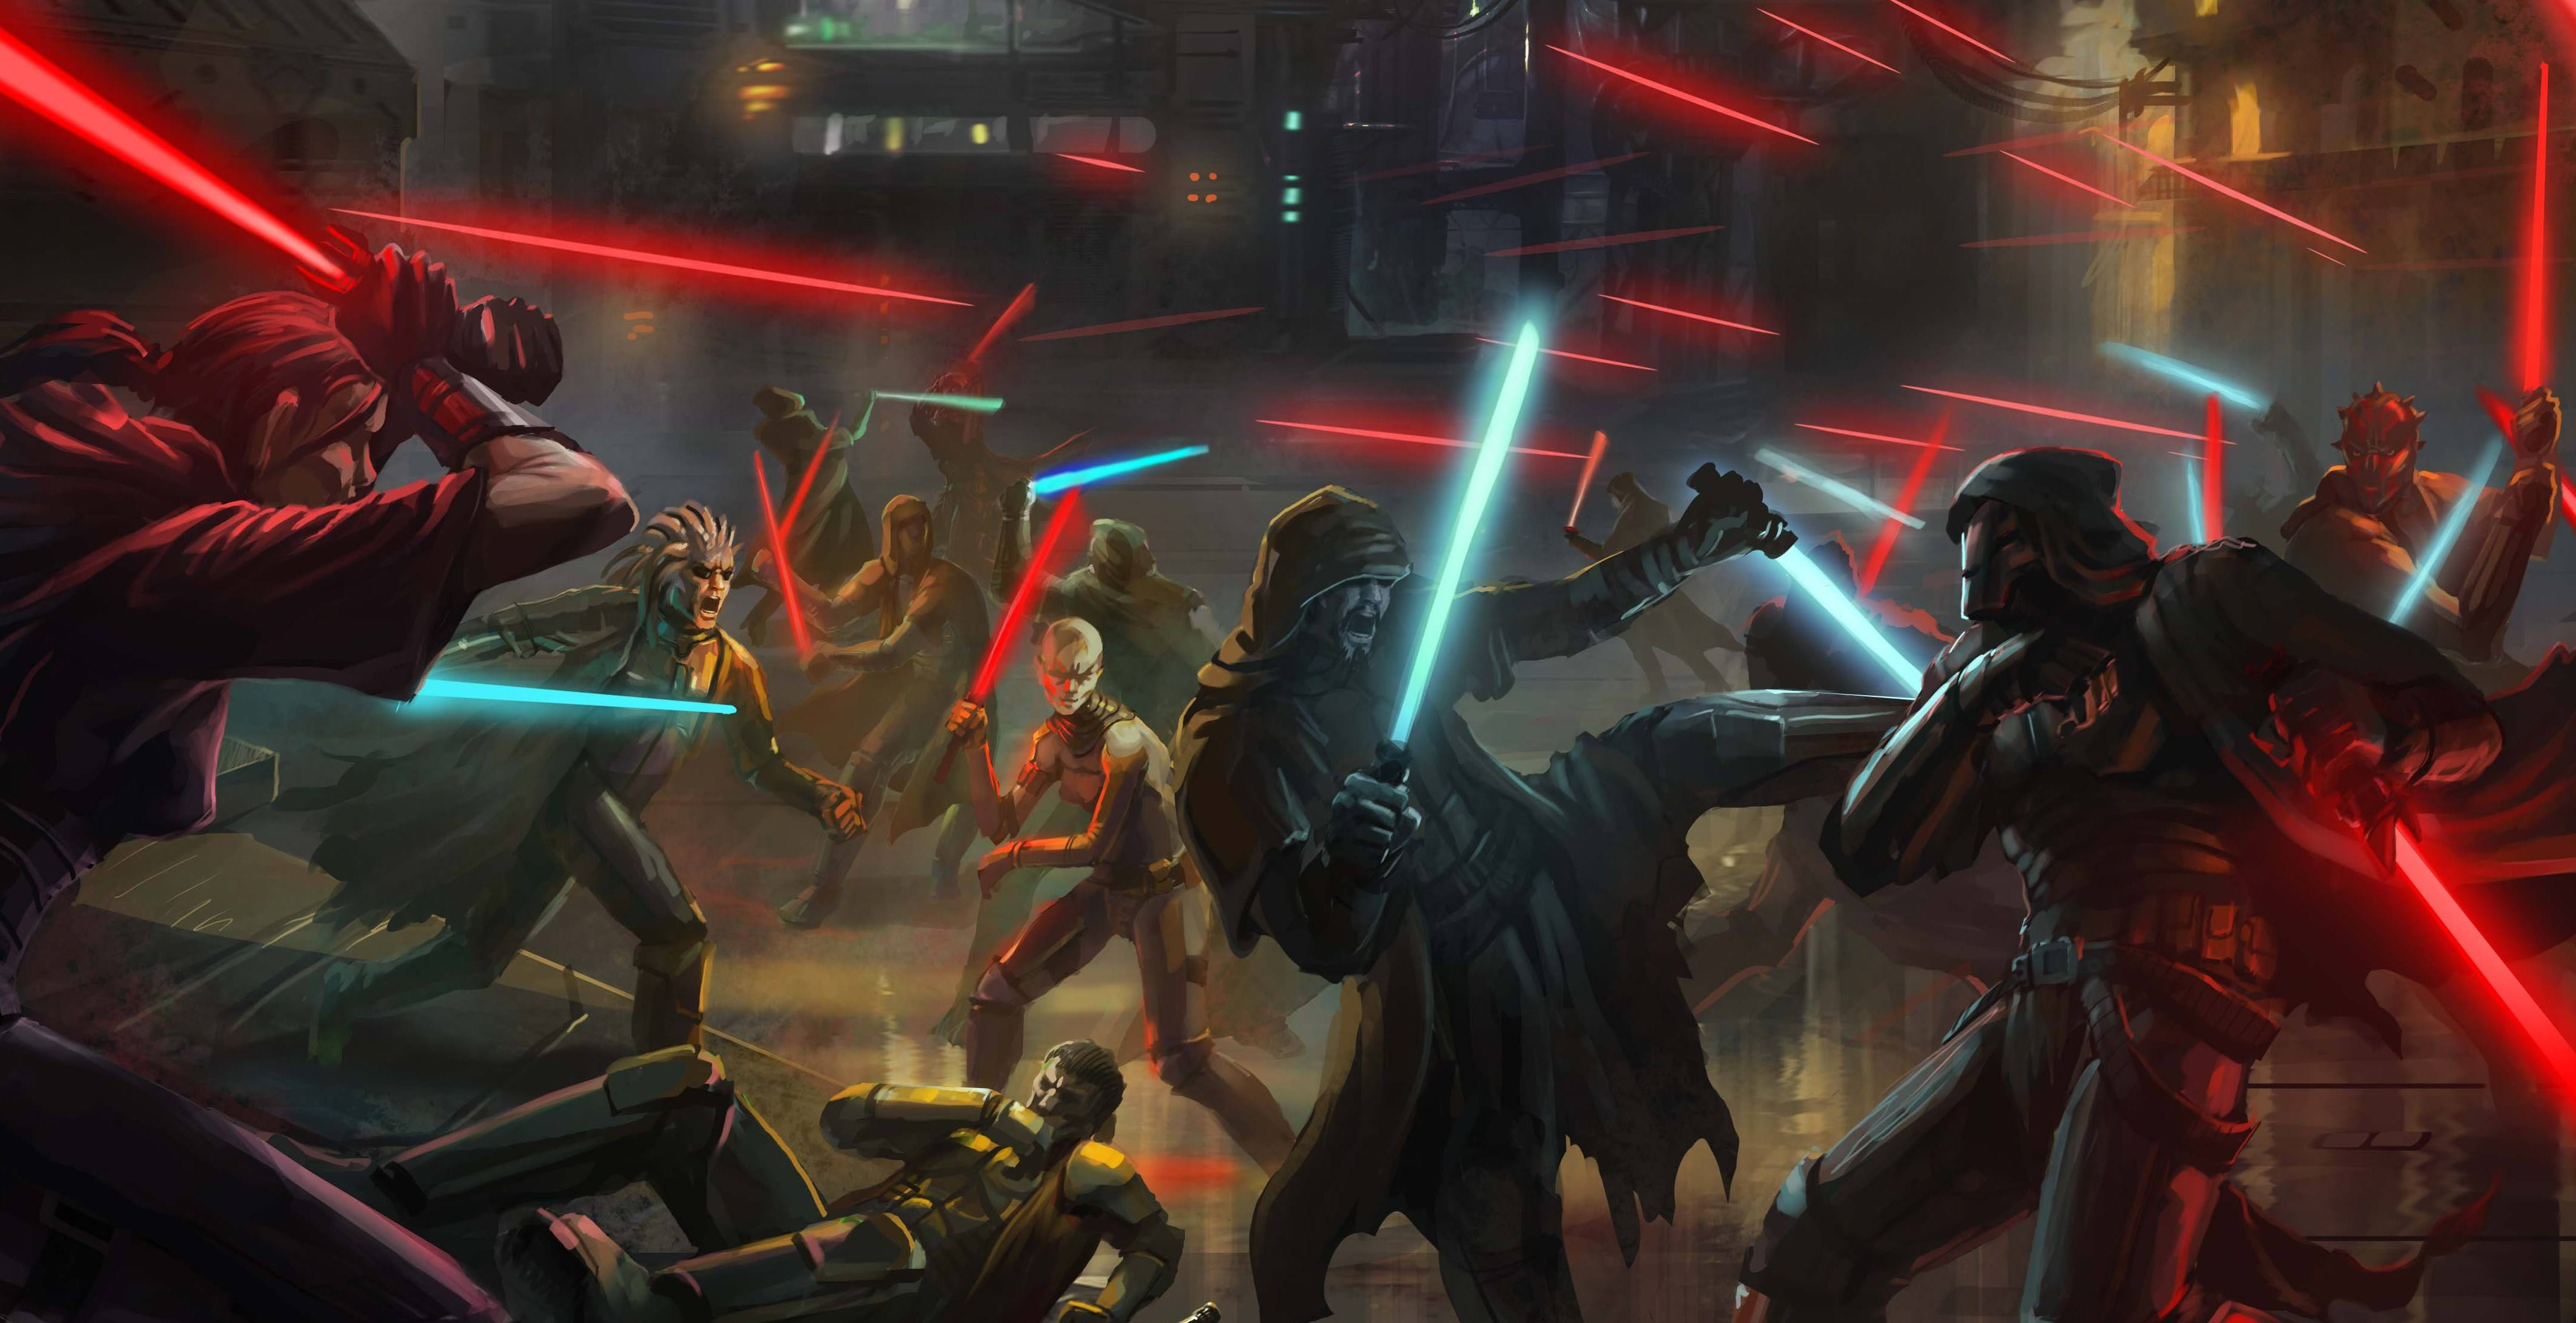 The Great Sith War